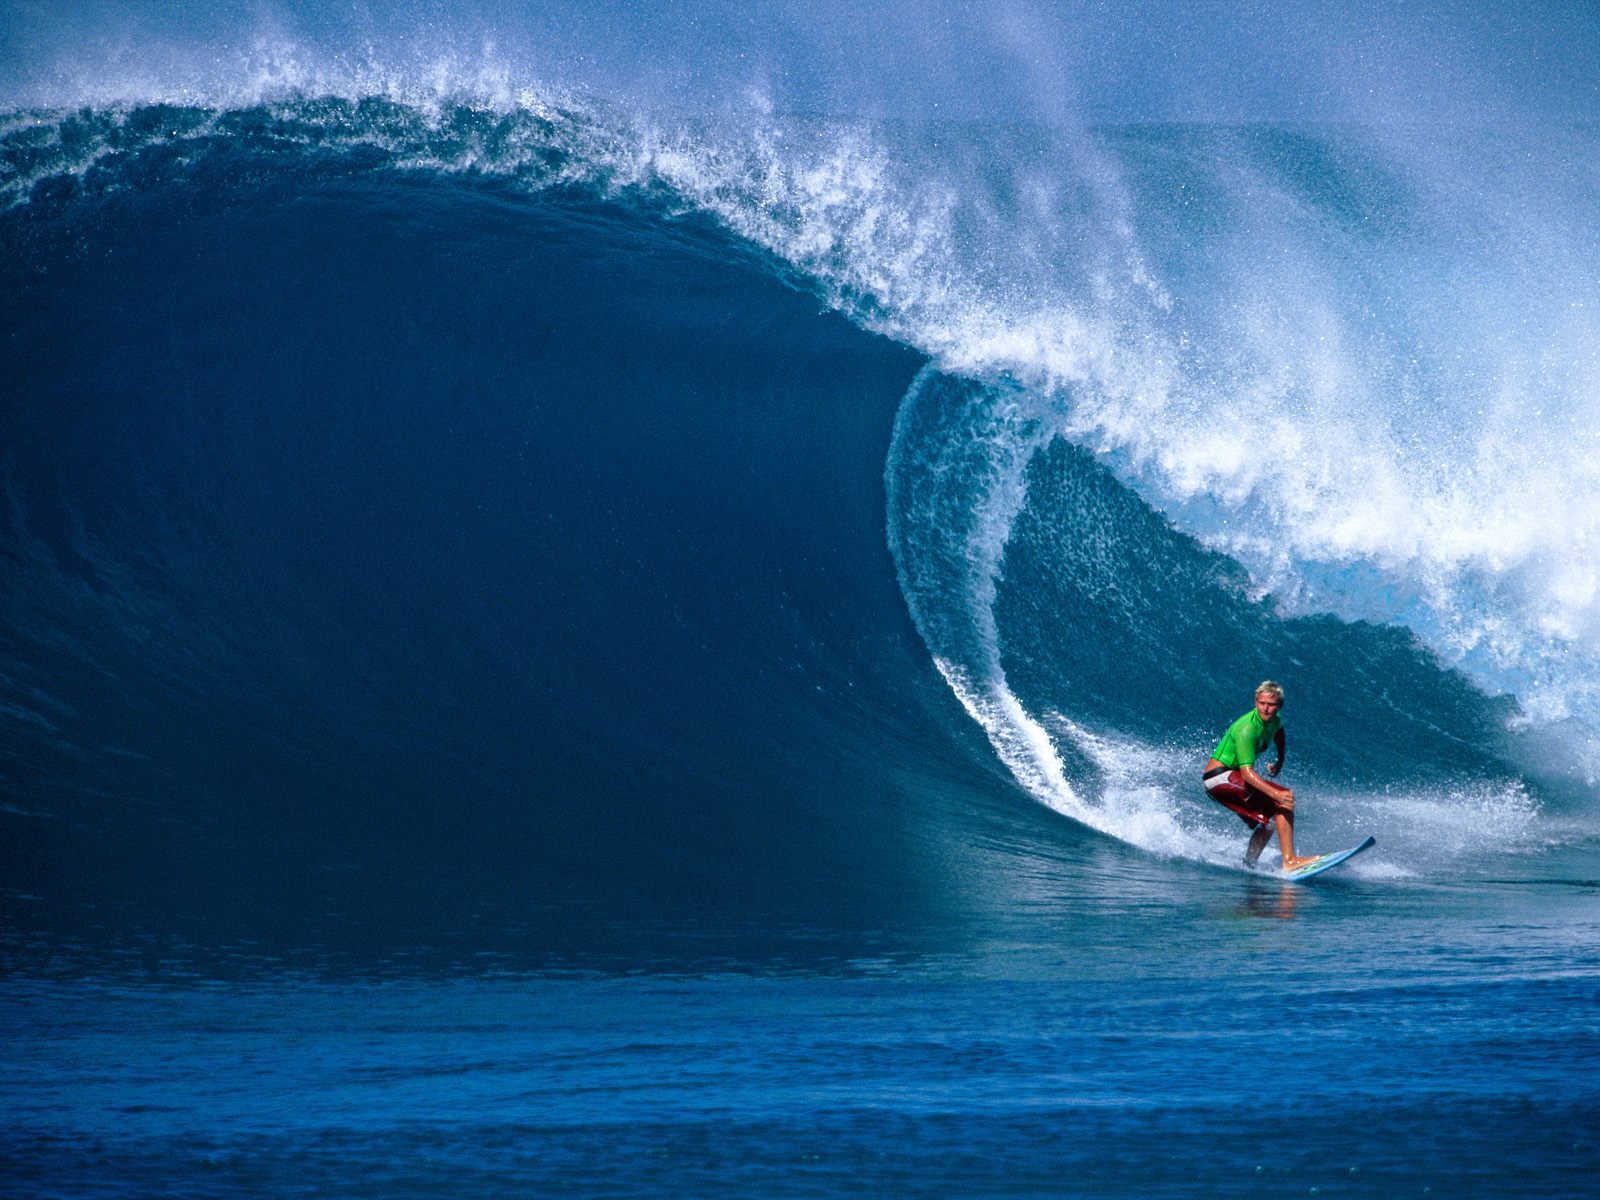 Hawaii Surfing, Dangerous Waves | New Stylish Wallpaper